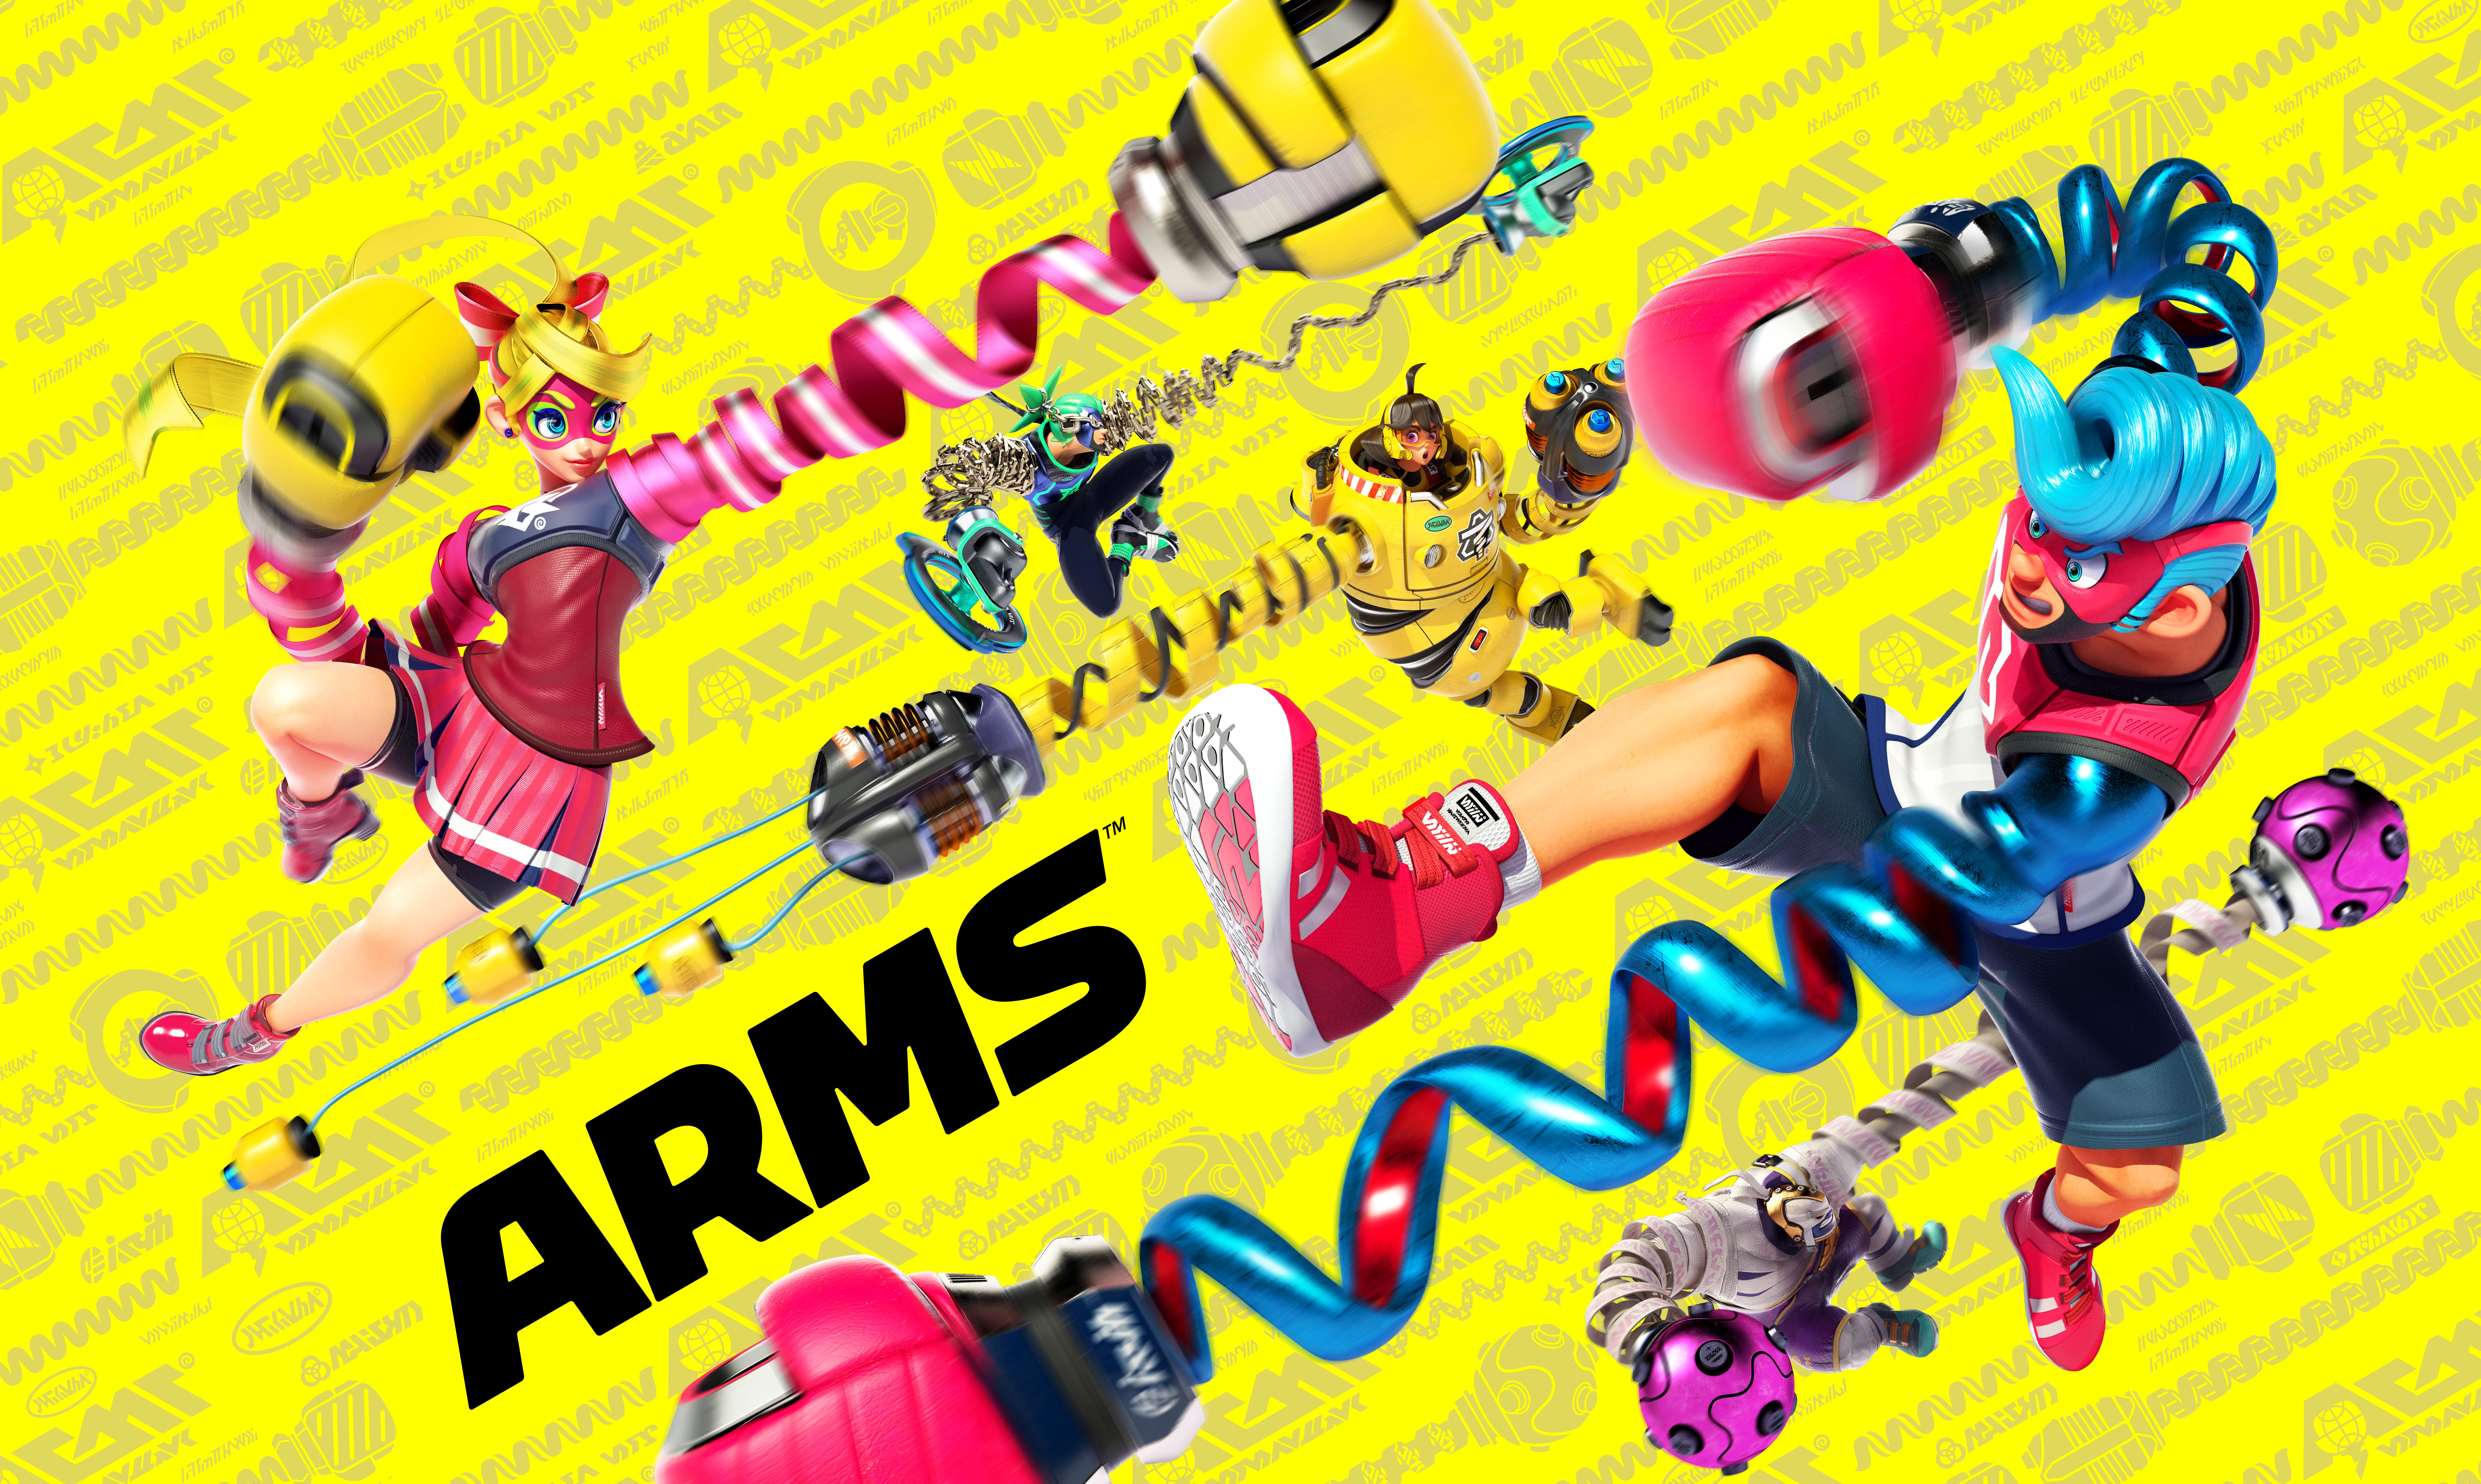 Arms_2017_05-17-17_048